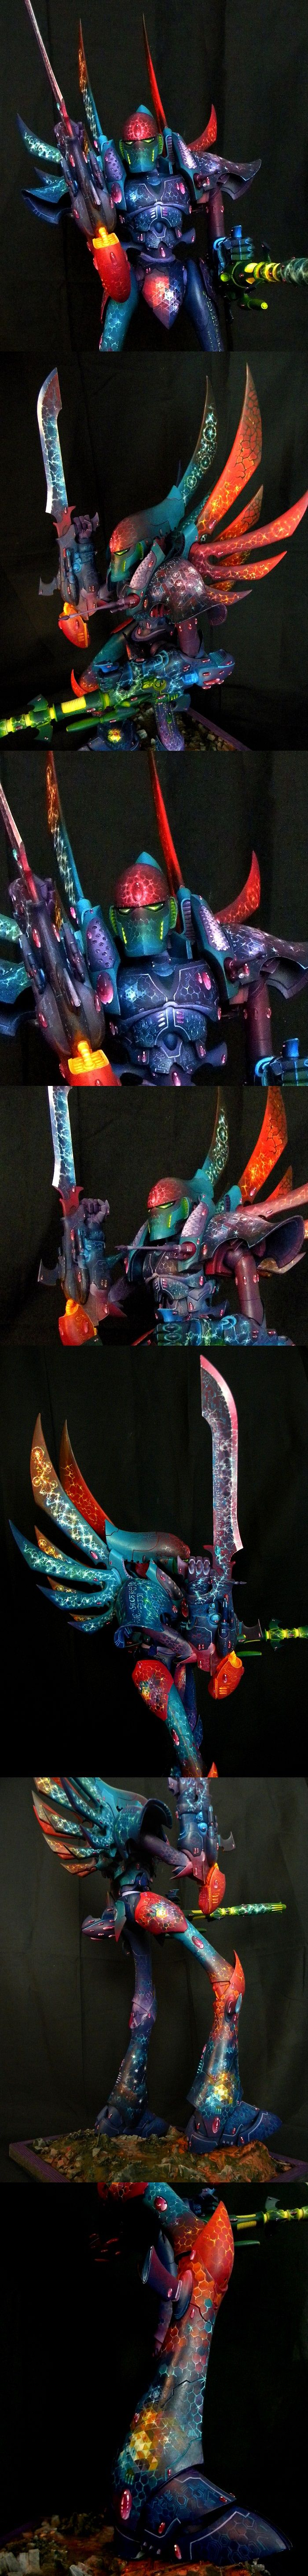 Eldar Phantom Titan // The paint job on this is ridiculously amazing! Surely this isn't all freehand?